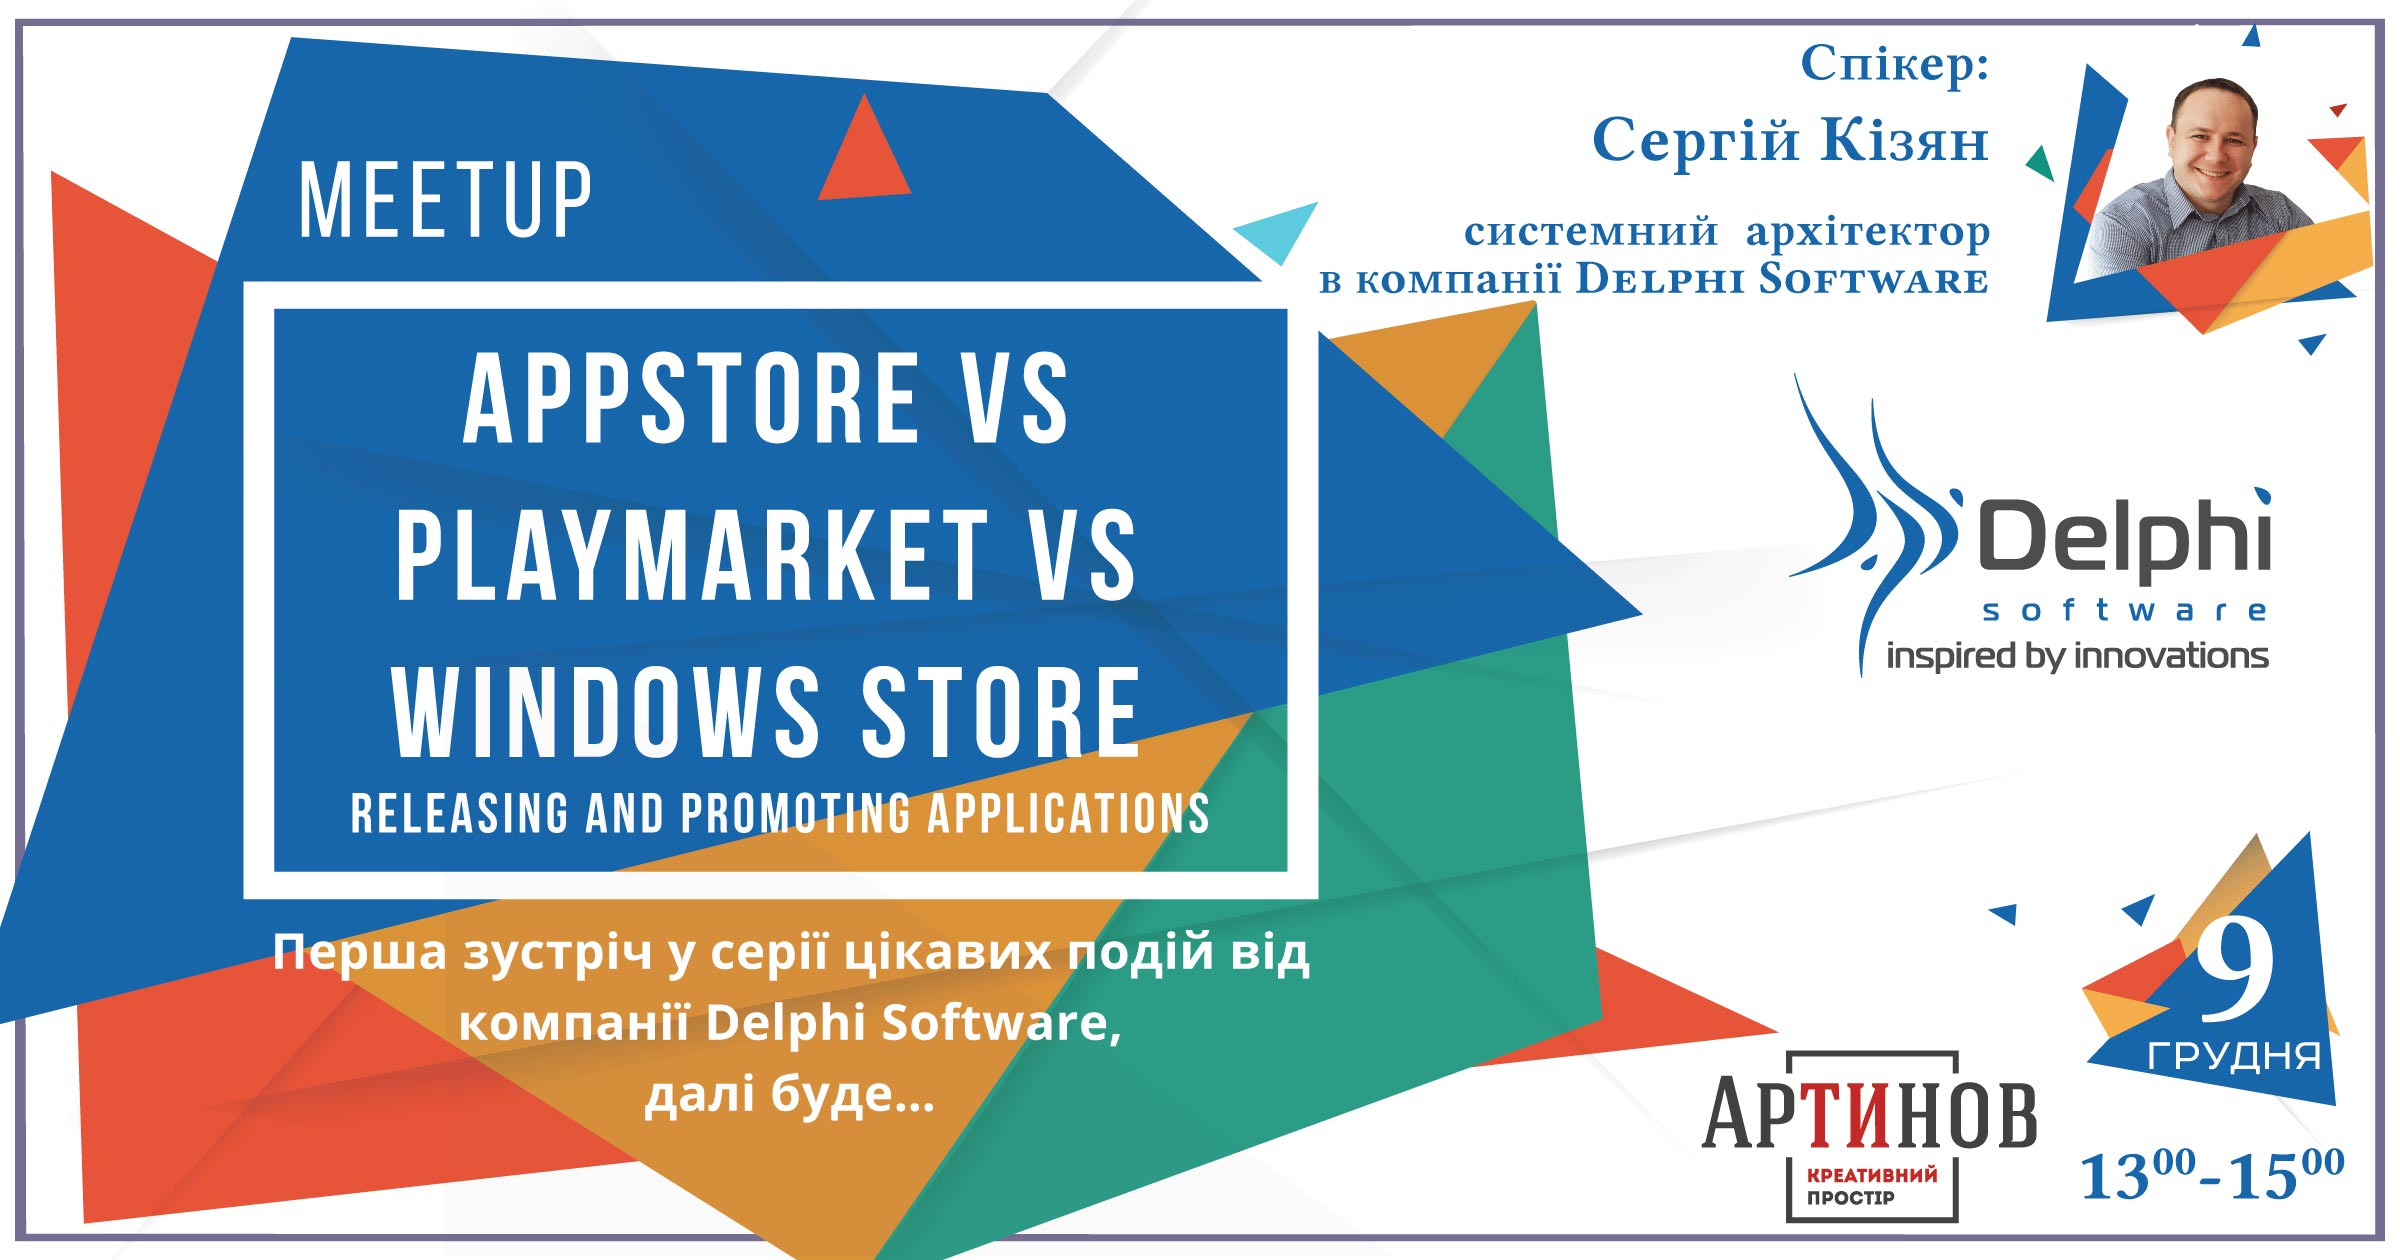 Applestore vs Playmarket vs Window Store